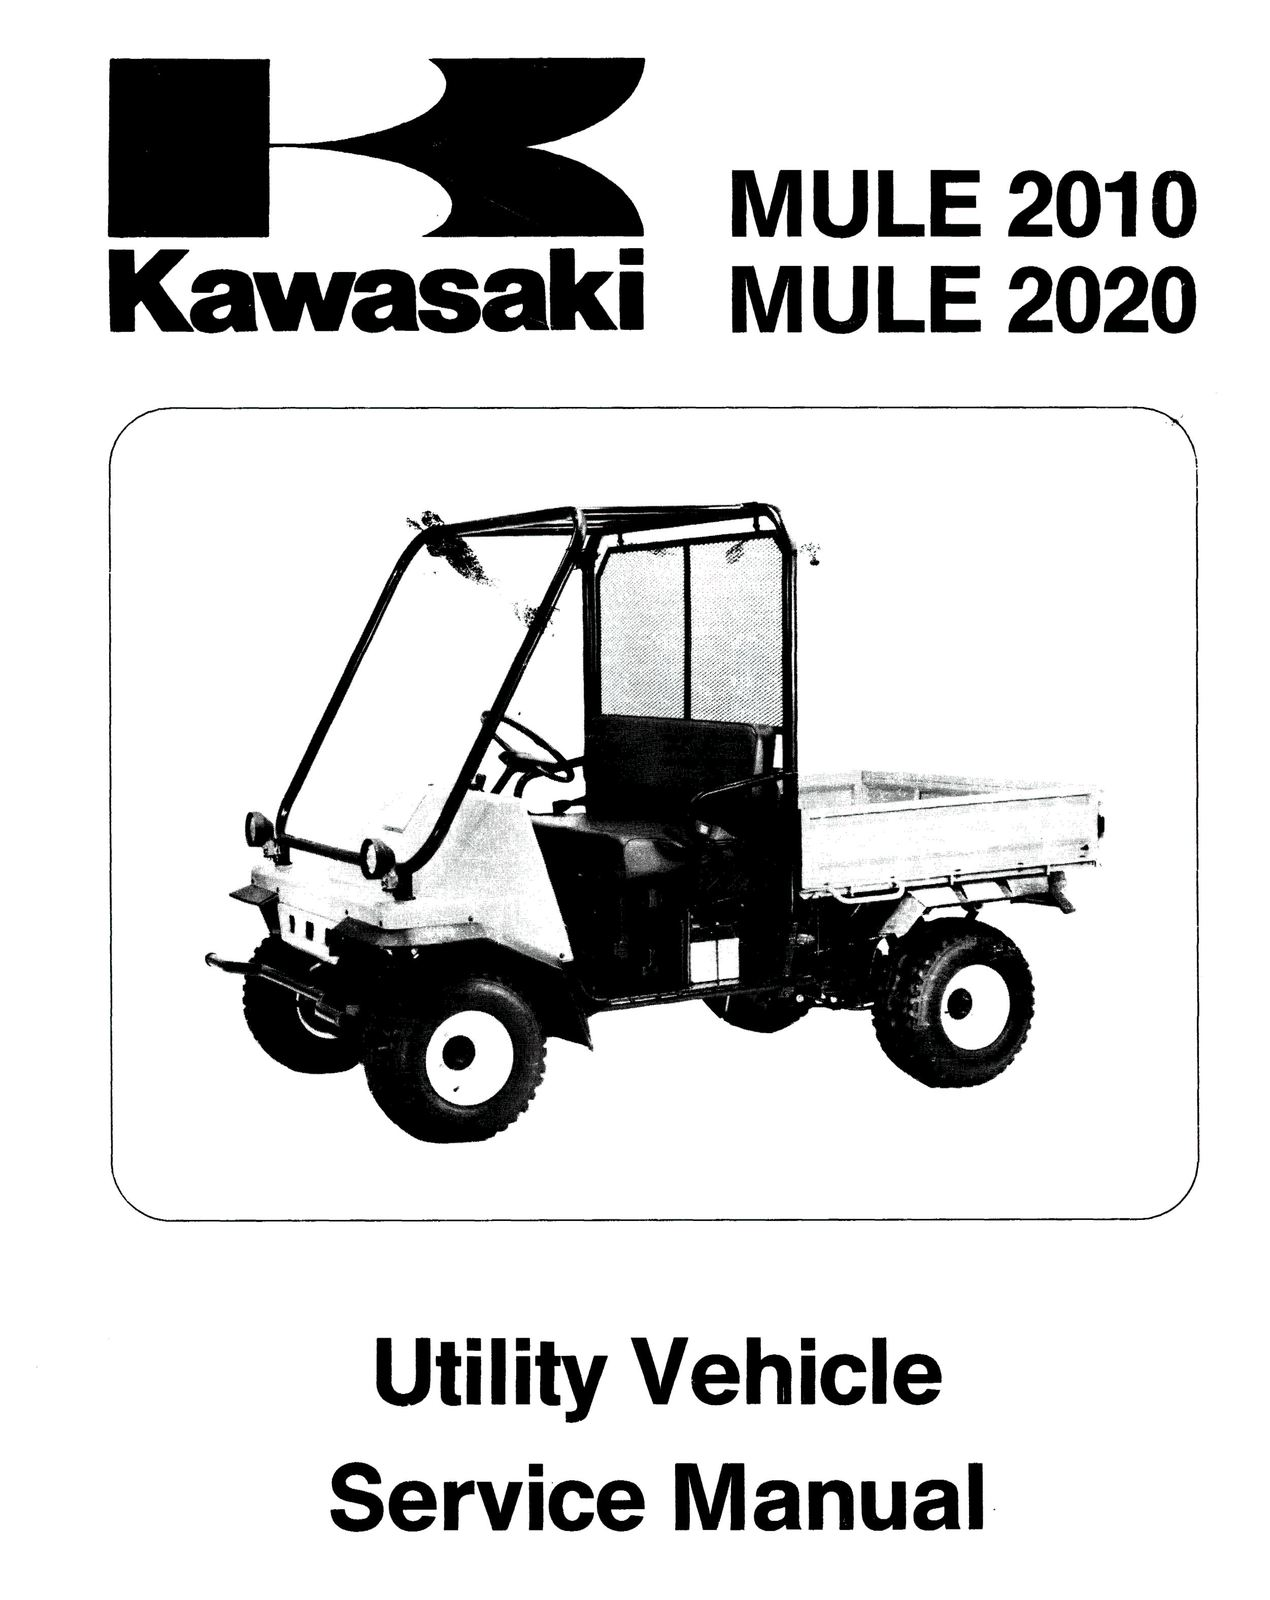 2000 Kawasaki Mule 550 Service Manual Sample User Kaf300 Wiring Diagram Images Gallery